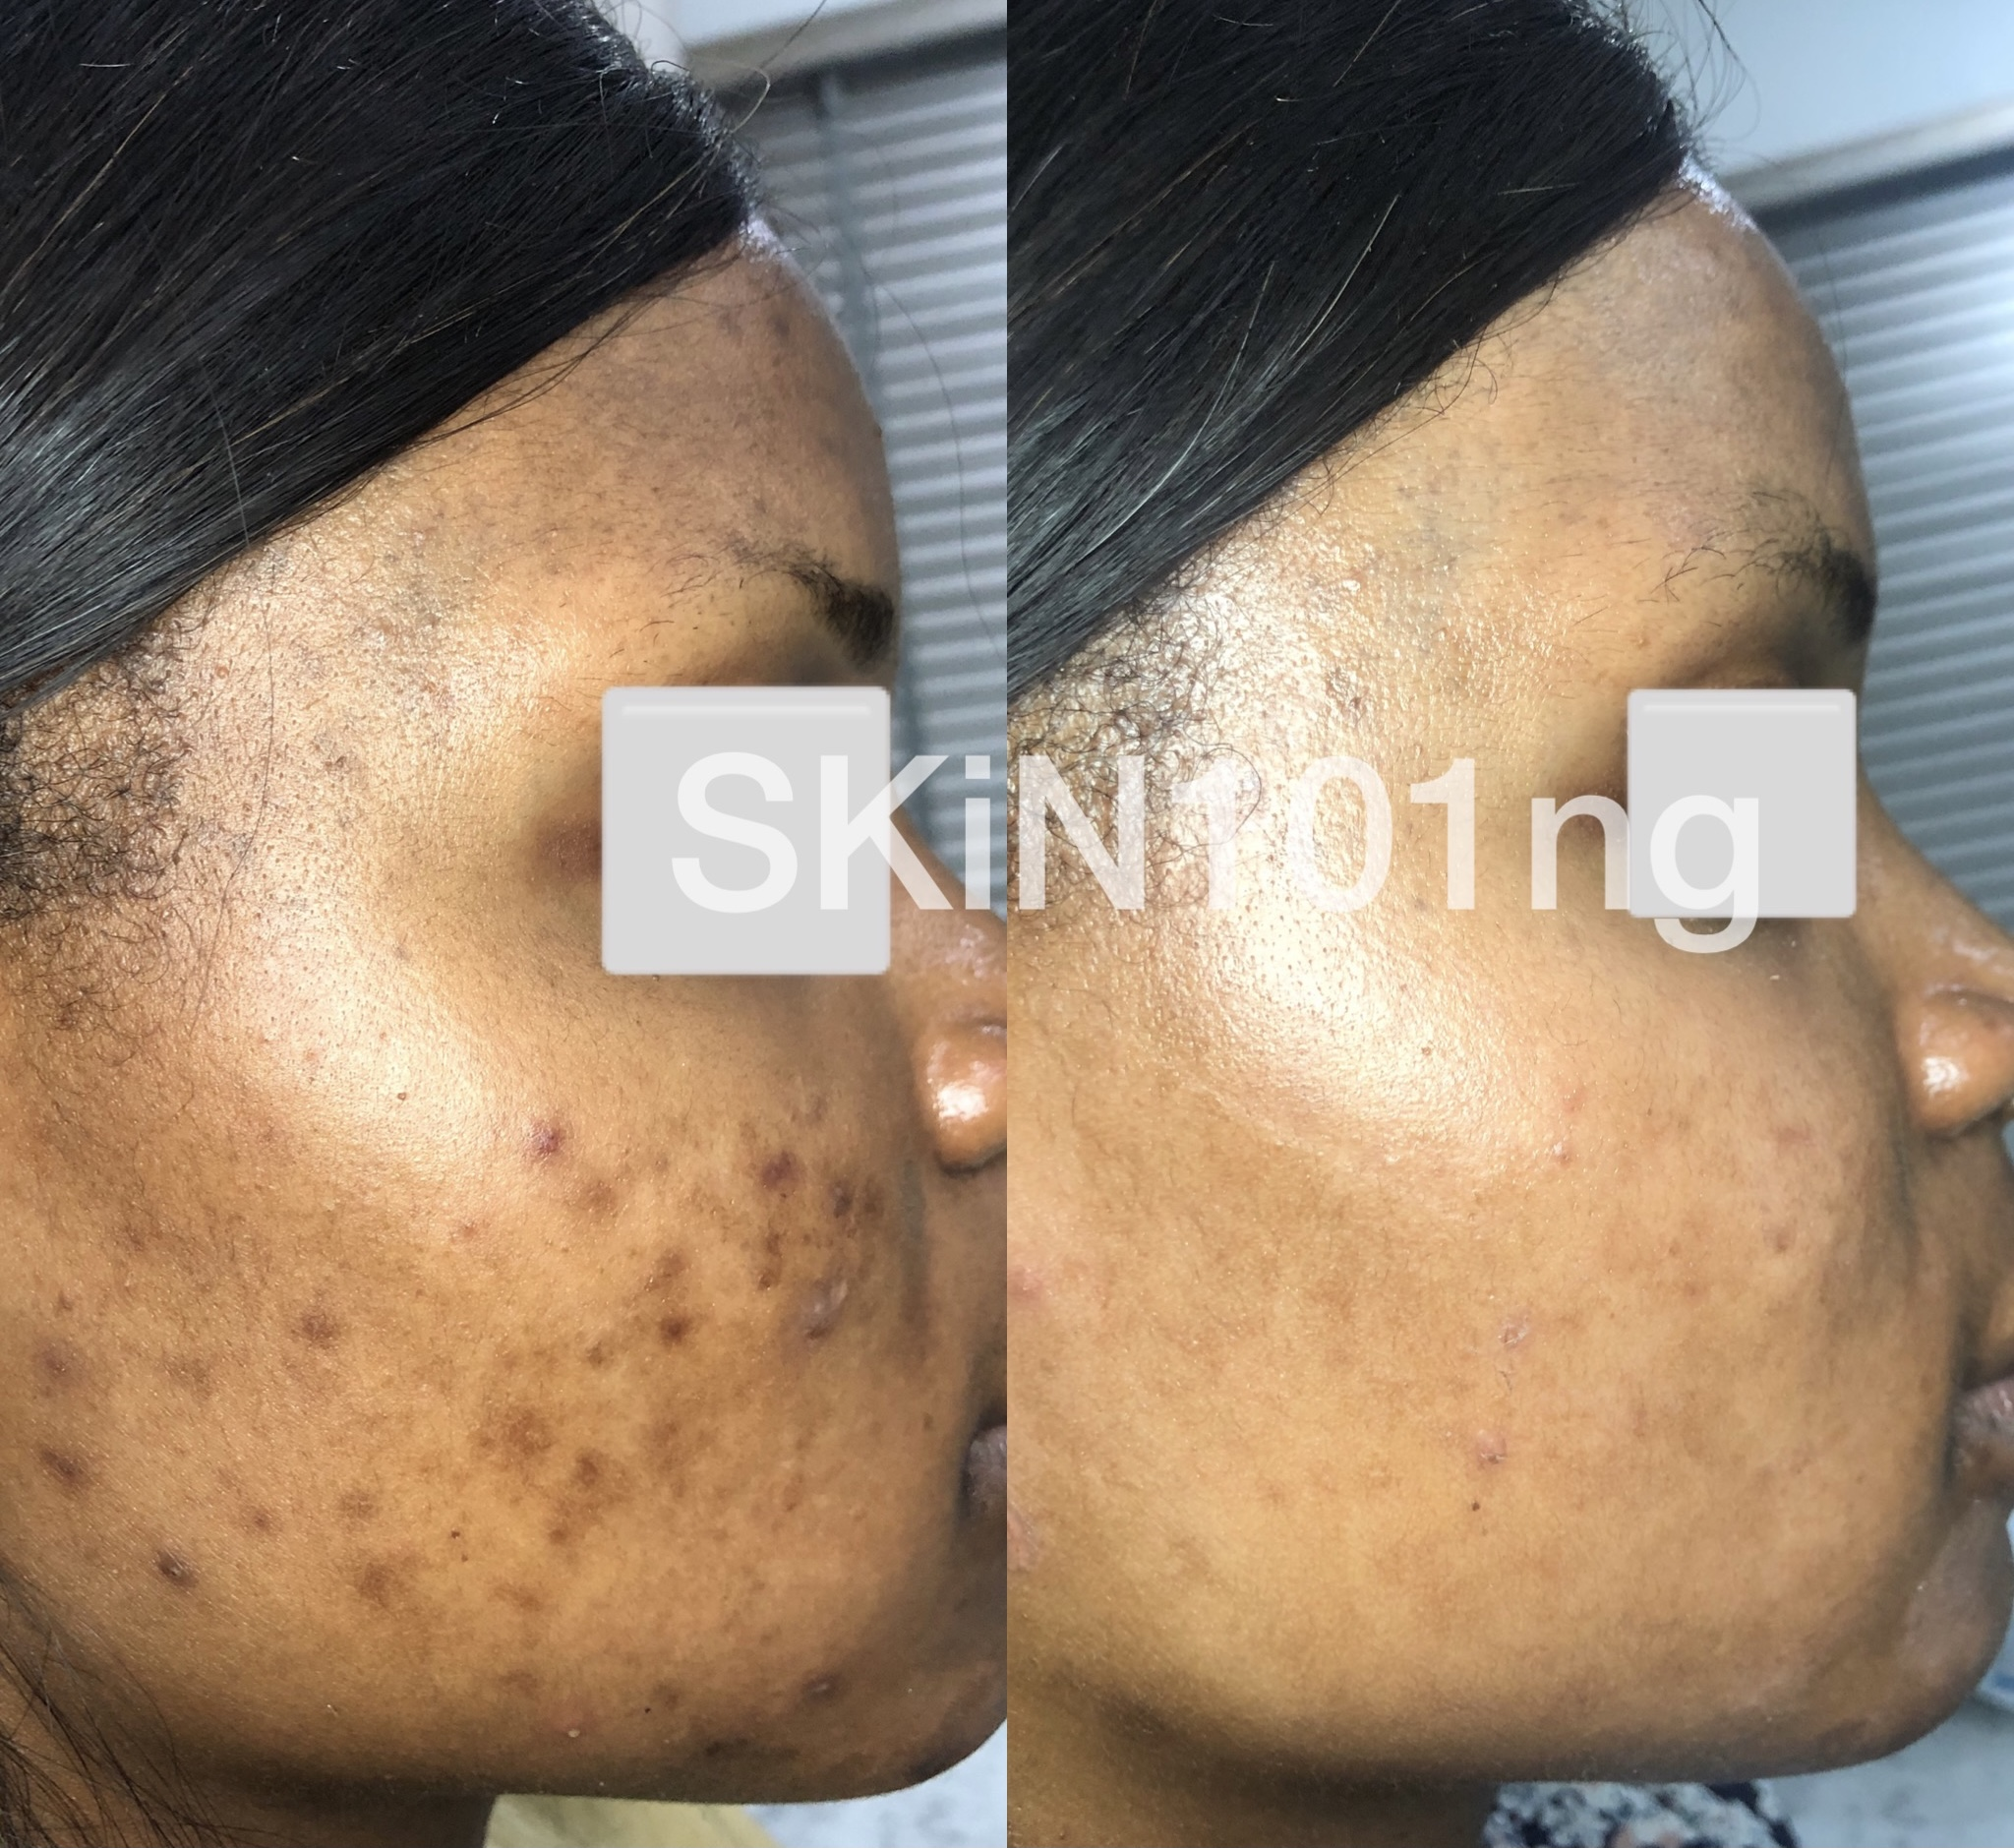 treatment of PIH from acne before and after abuja nigeria skin clinic